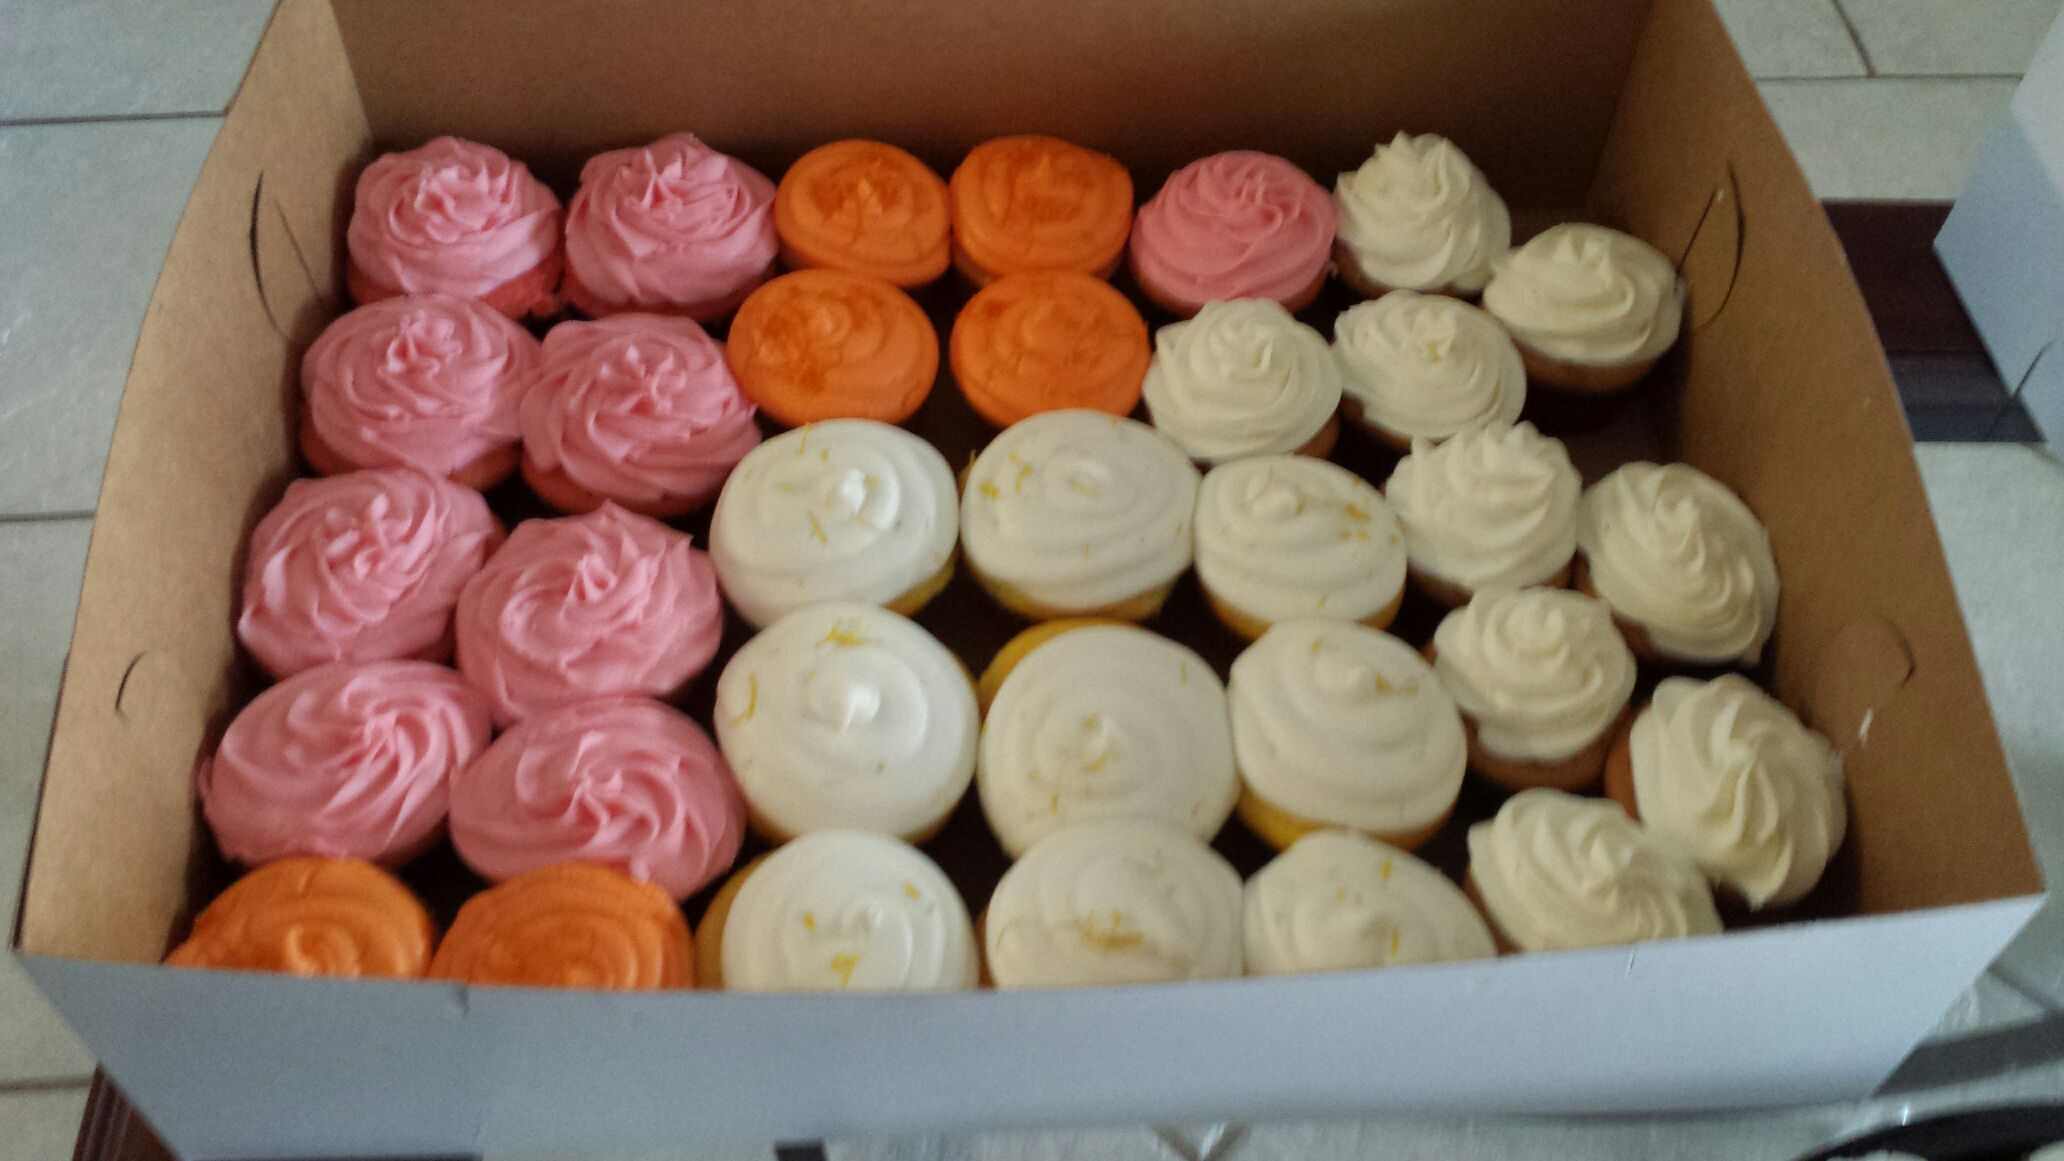 Heavenly Cupcakes And Cakes By: Zina - Magazine cover